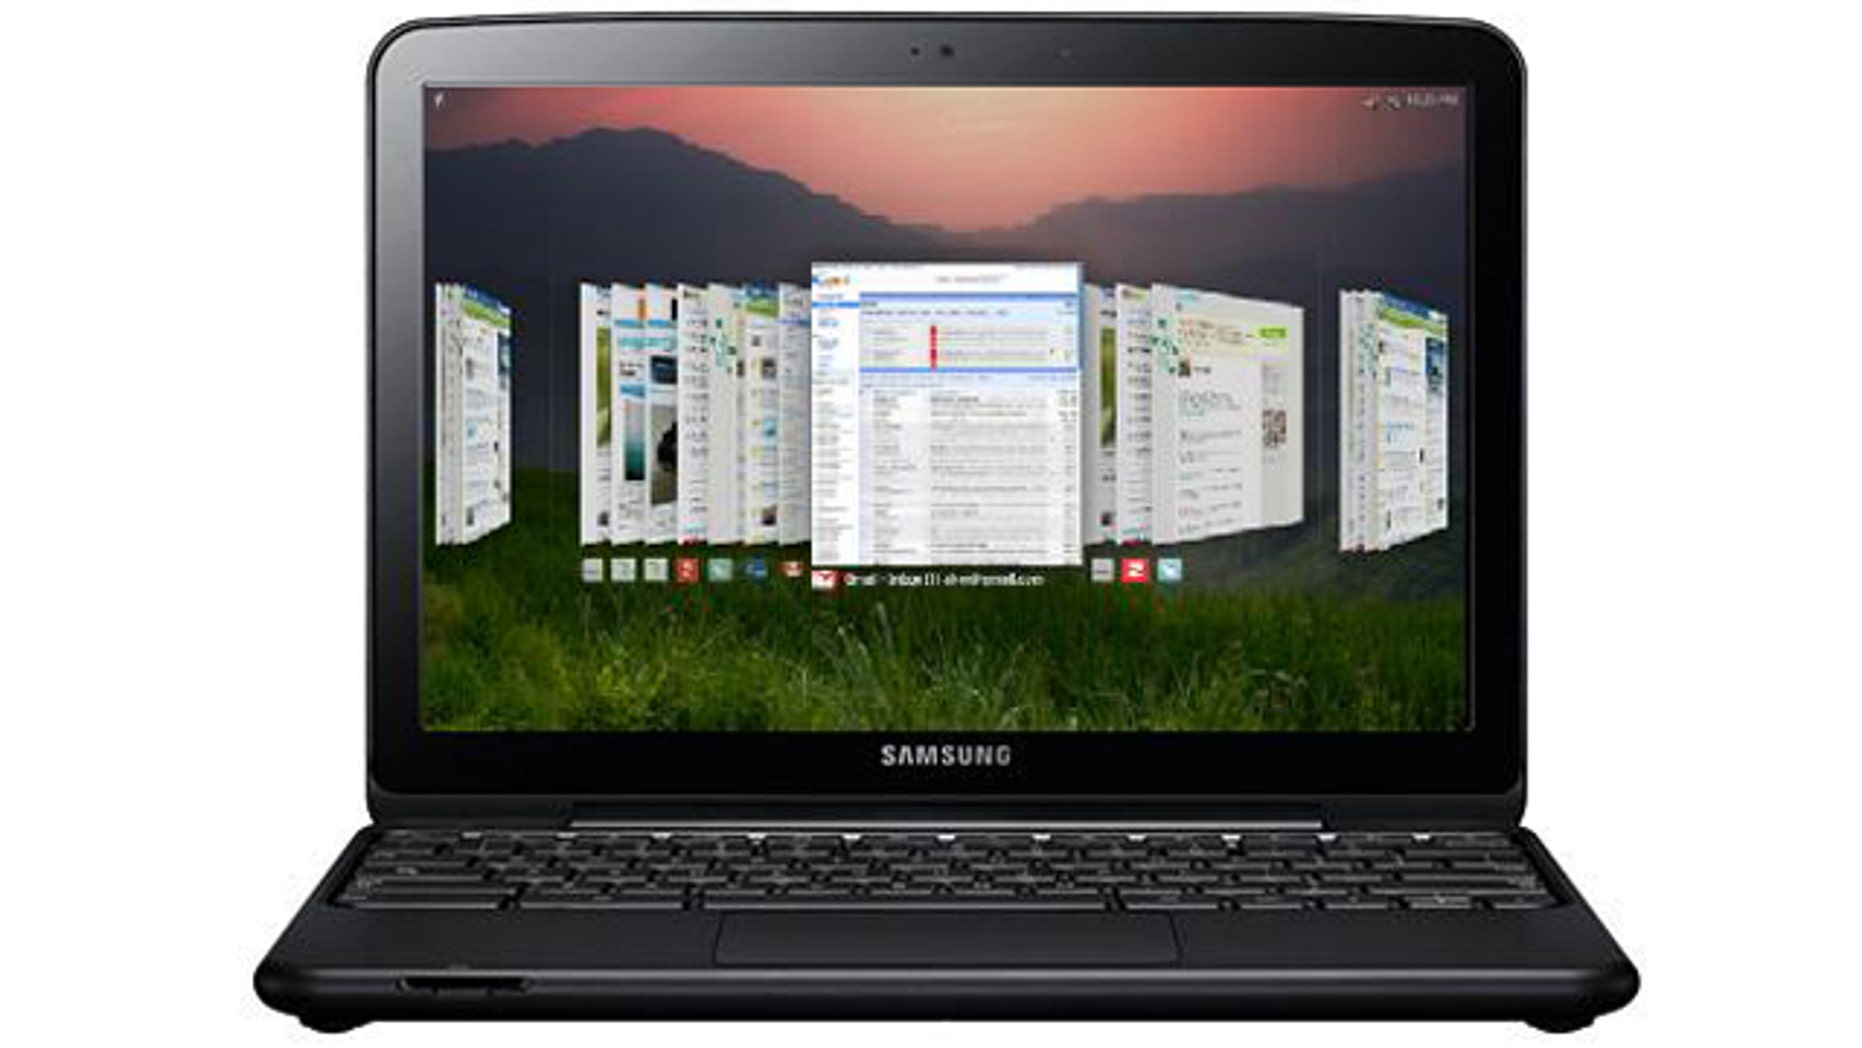 The Samsung Series 5 Chromebook, one of the first notebook computers to run Google's Chrome operating system.